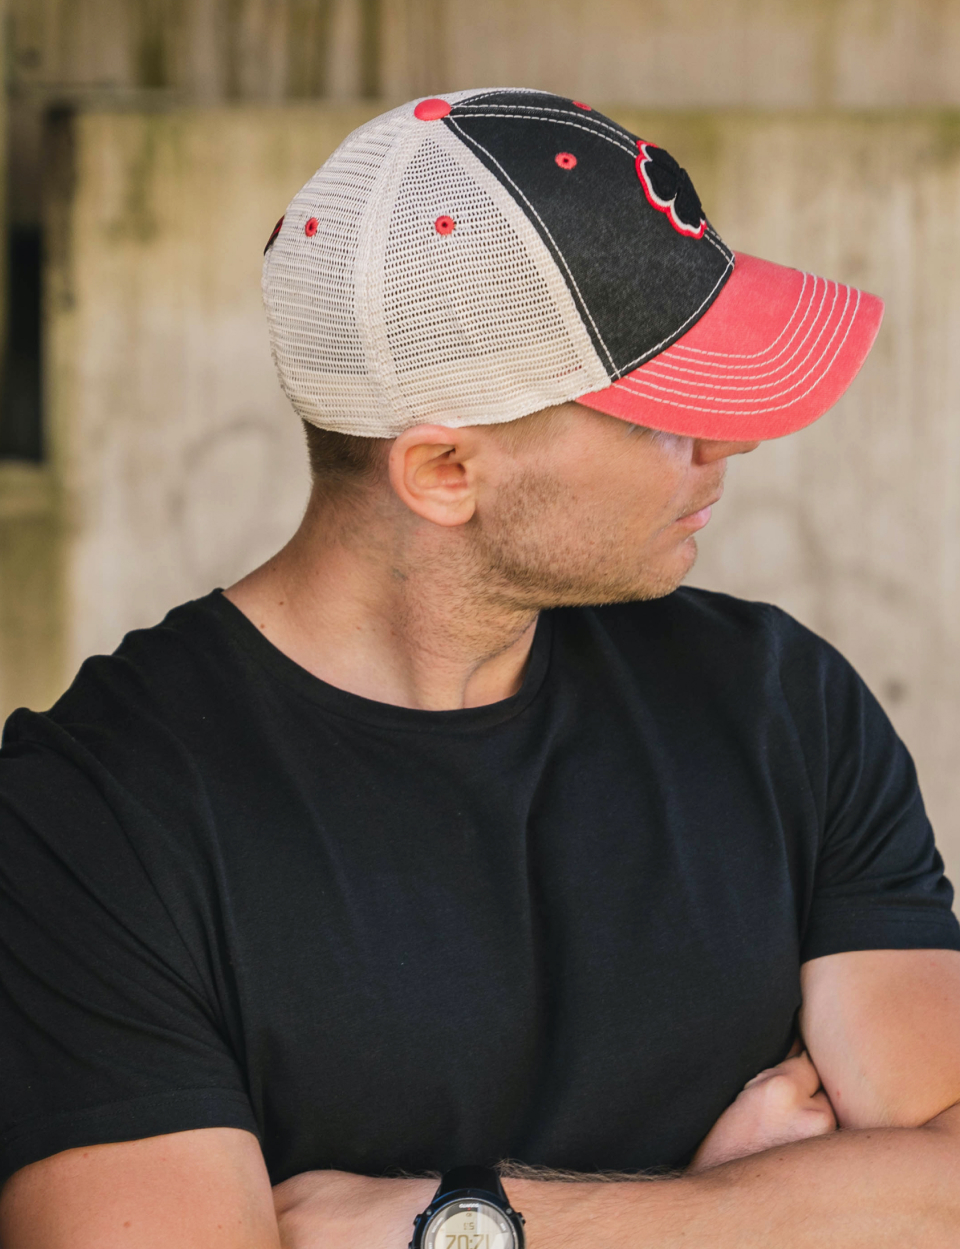 Hatstore presents: The Trucker